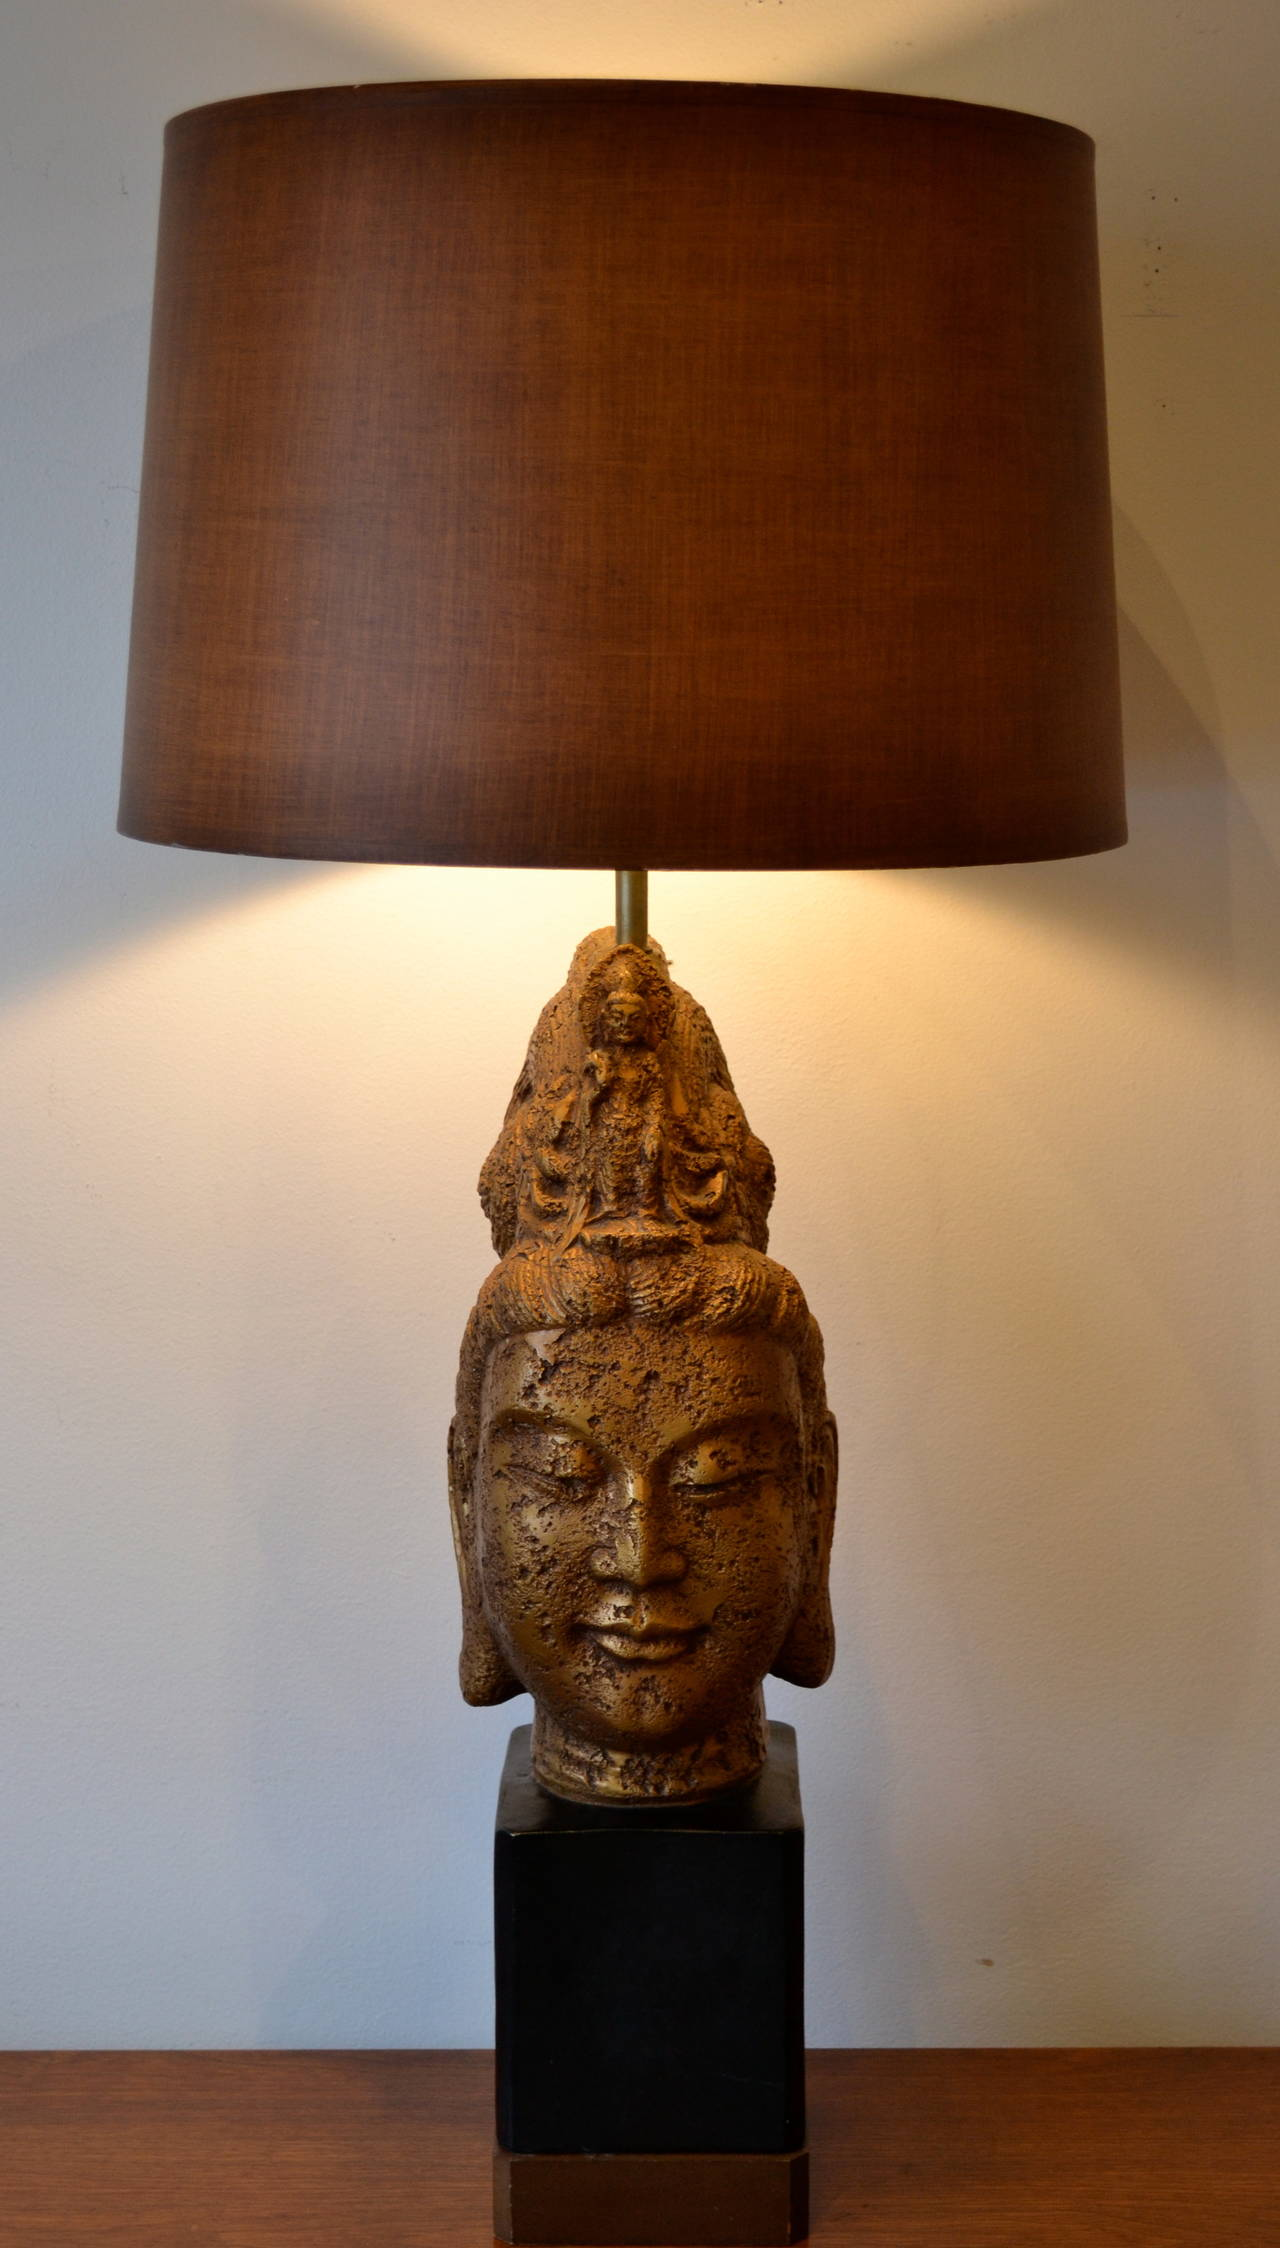 Awesome large Buddha head table lamp made of plaster.